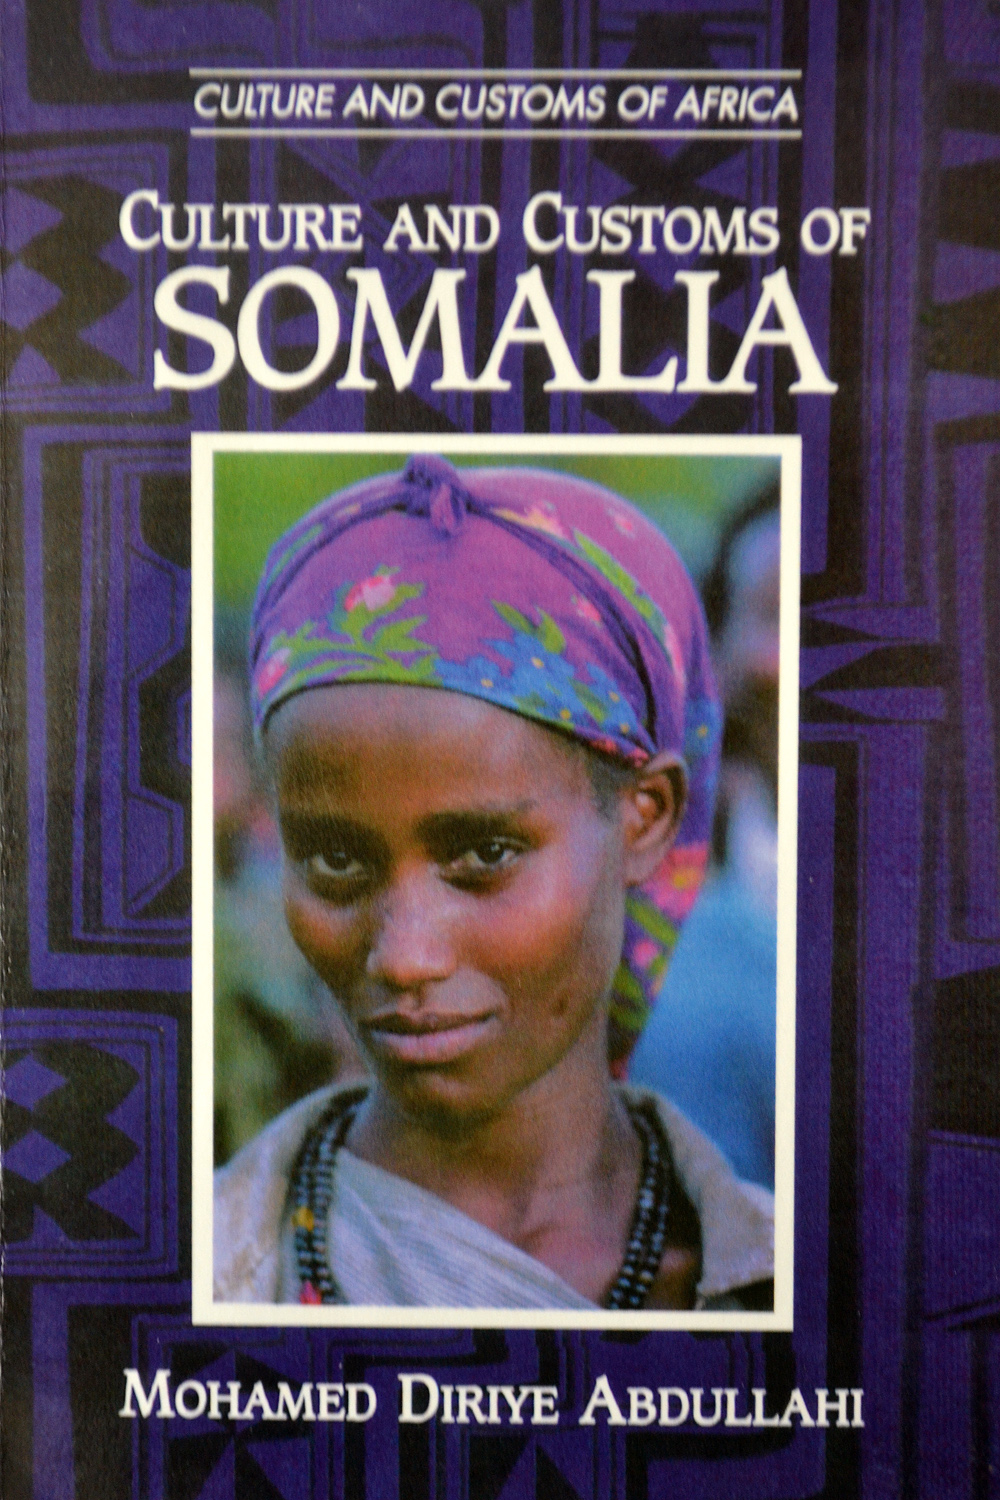 The publication ´Culture and Customs of Somalia´.